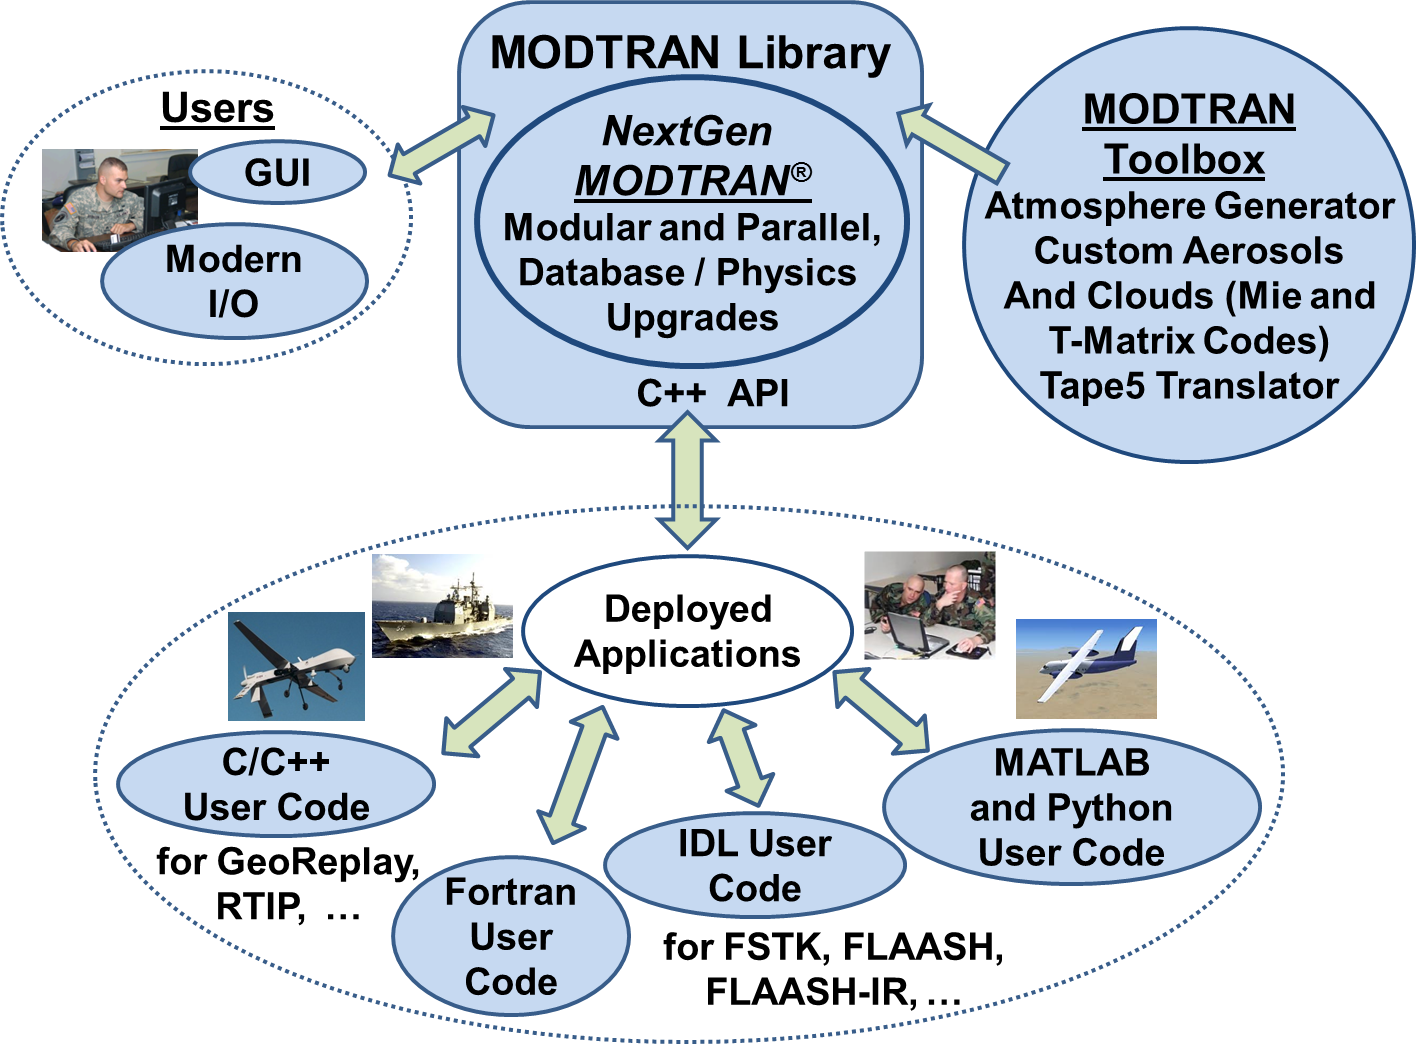 MODTRAN Overview